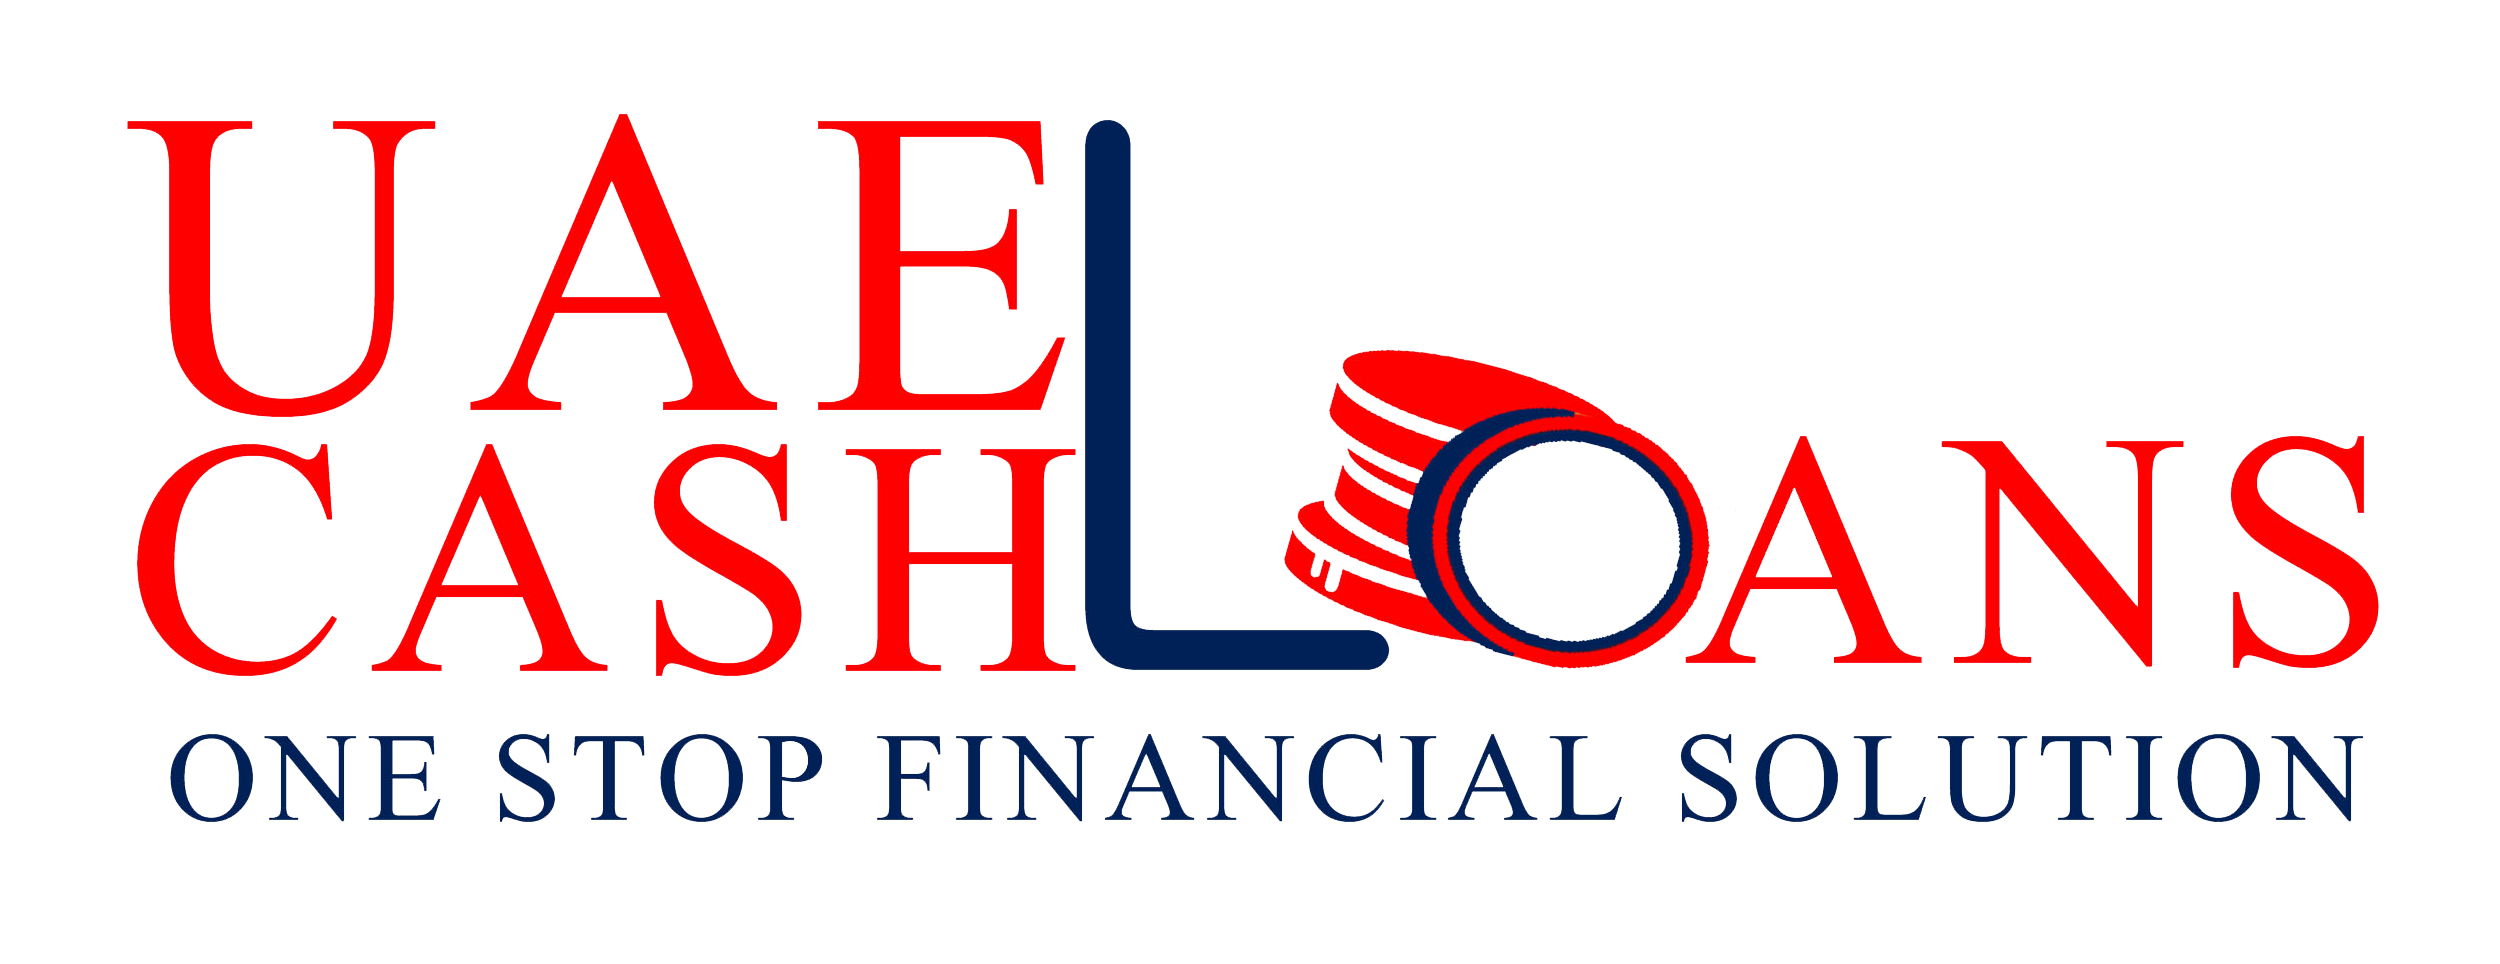 Uae Cash Loans Logo